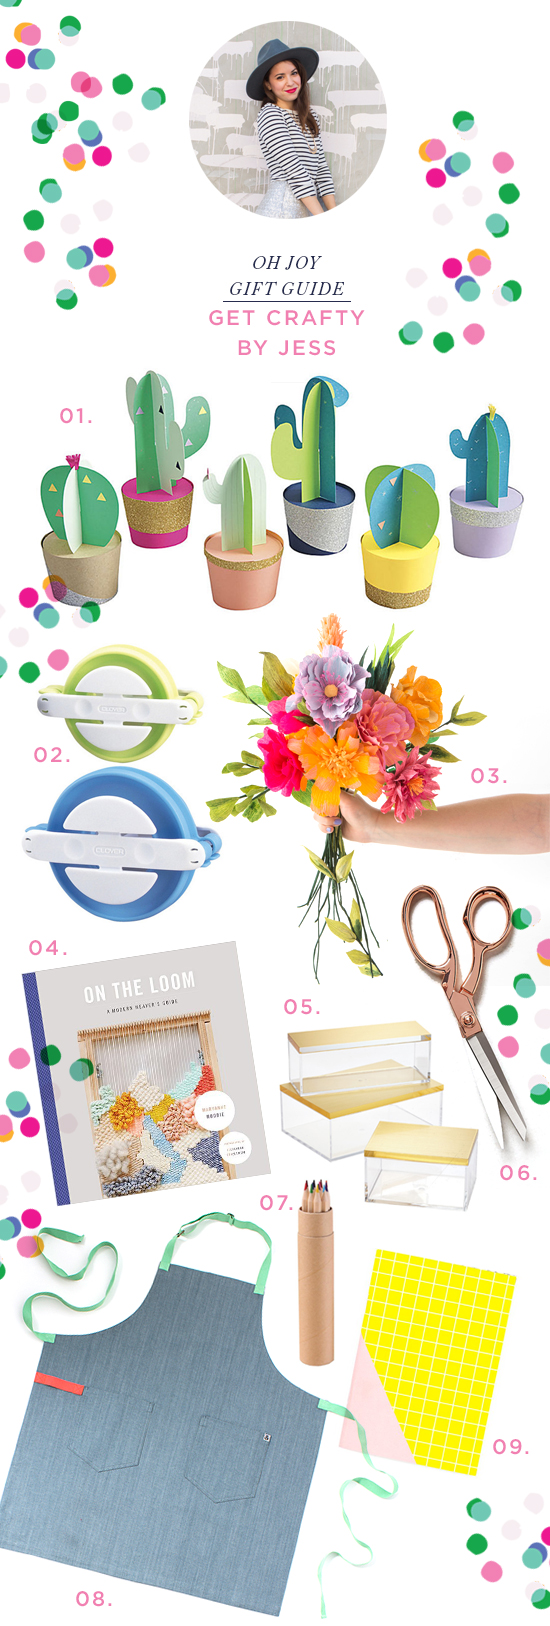 2016_giftguide_getcrafty